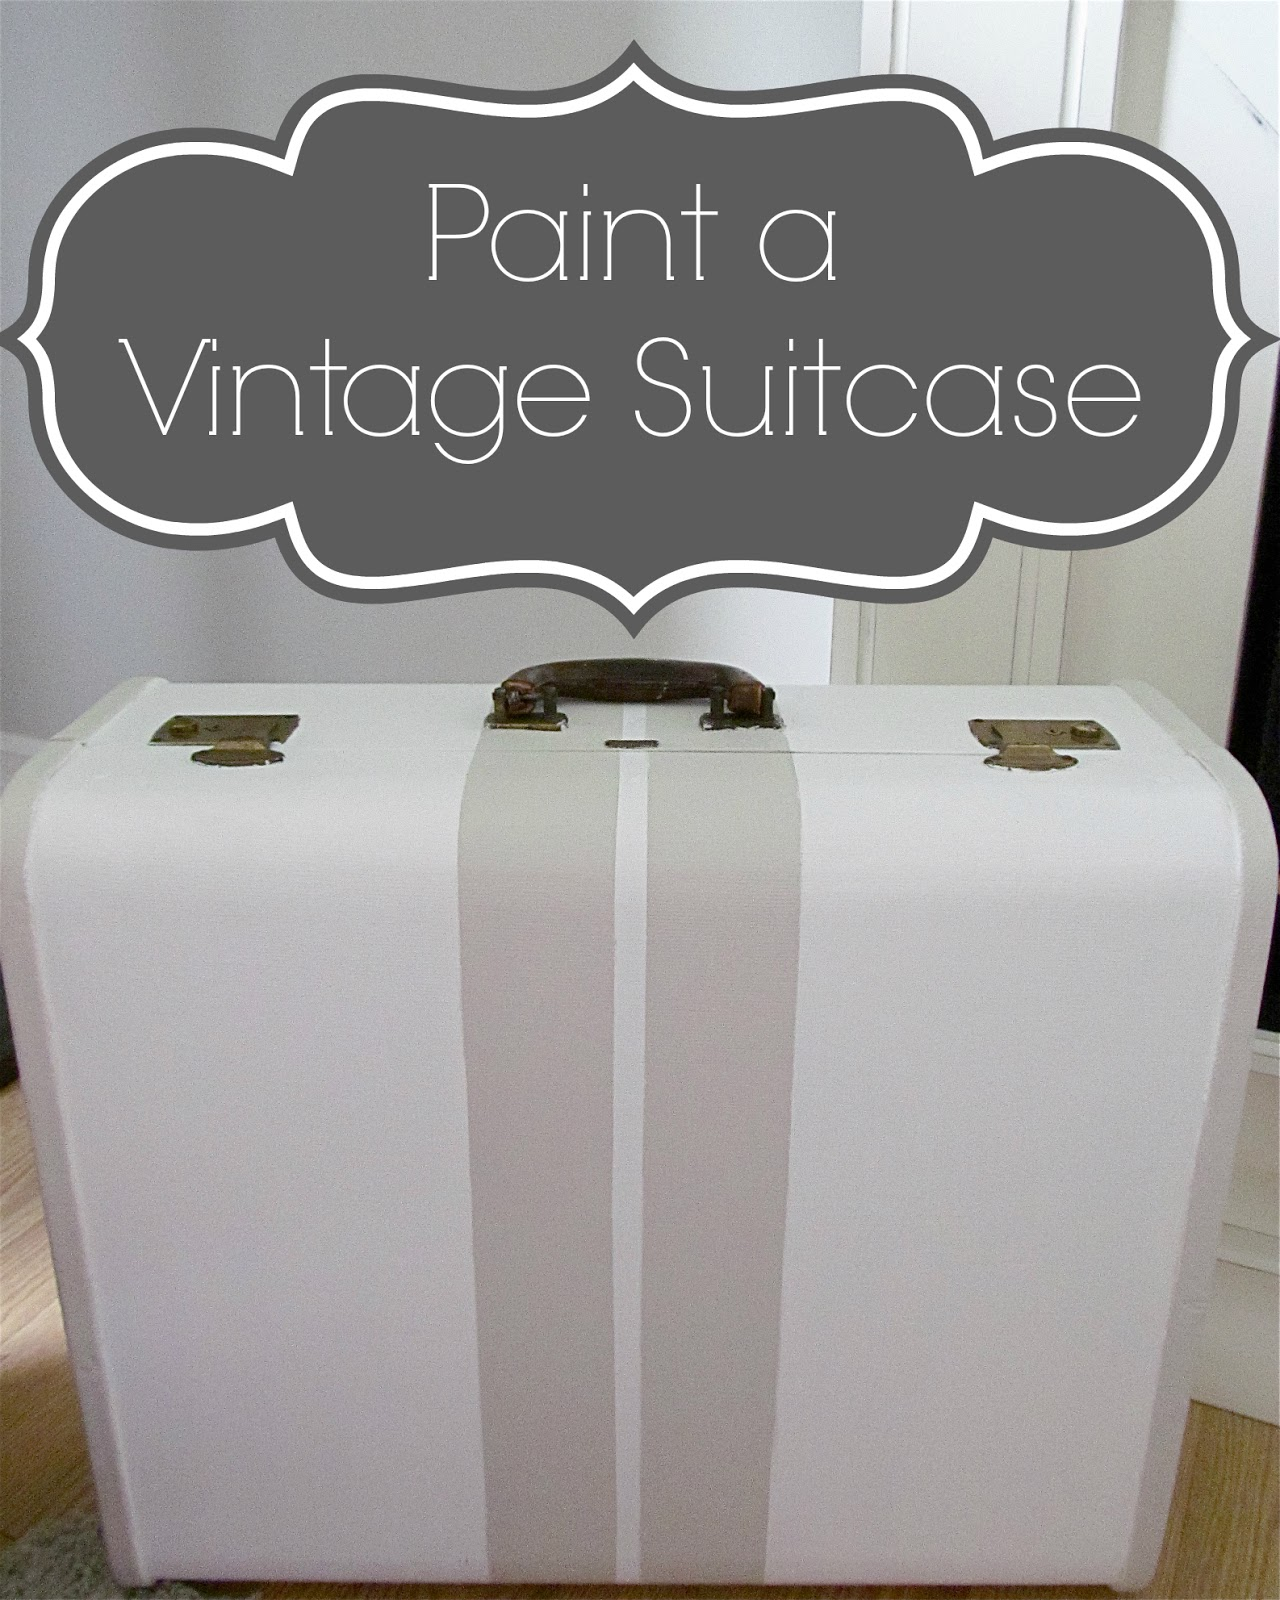 Painting a Vintage Suitcase - Hymns and Verses